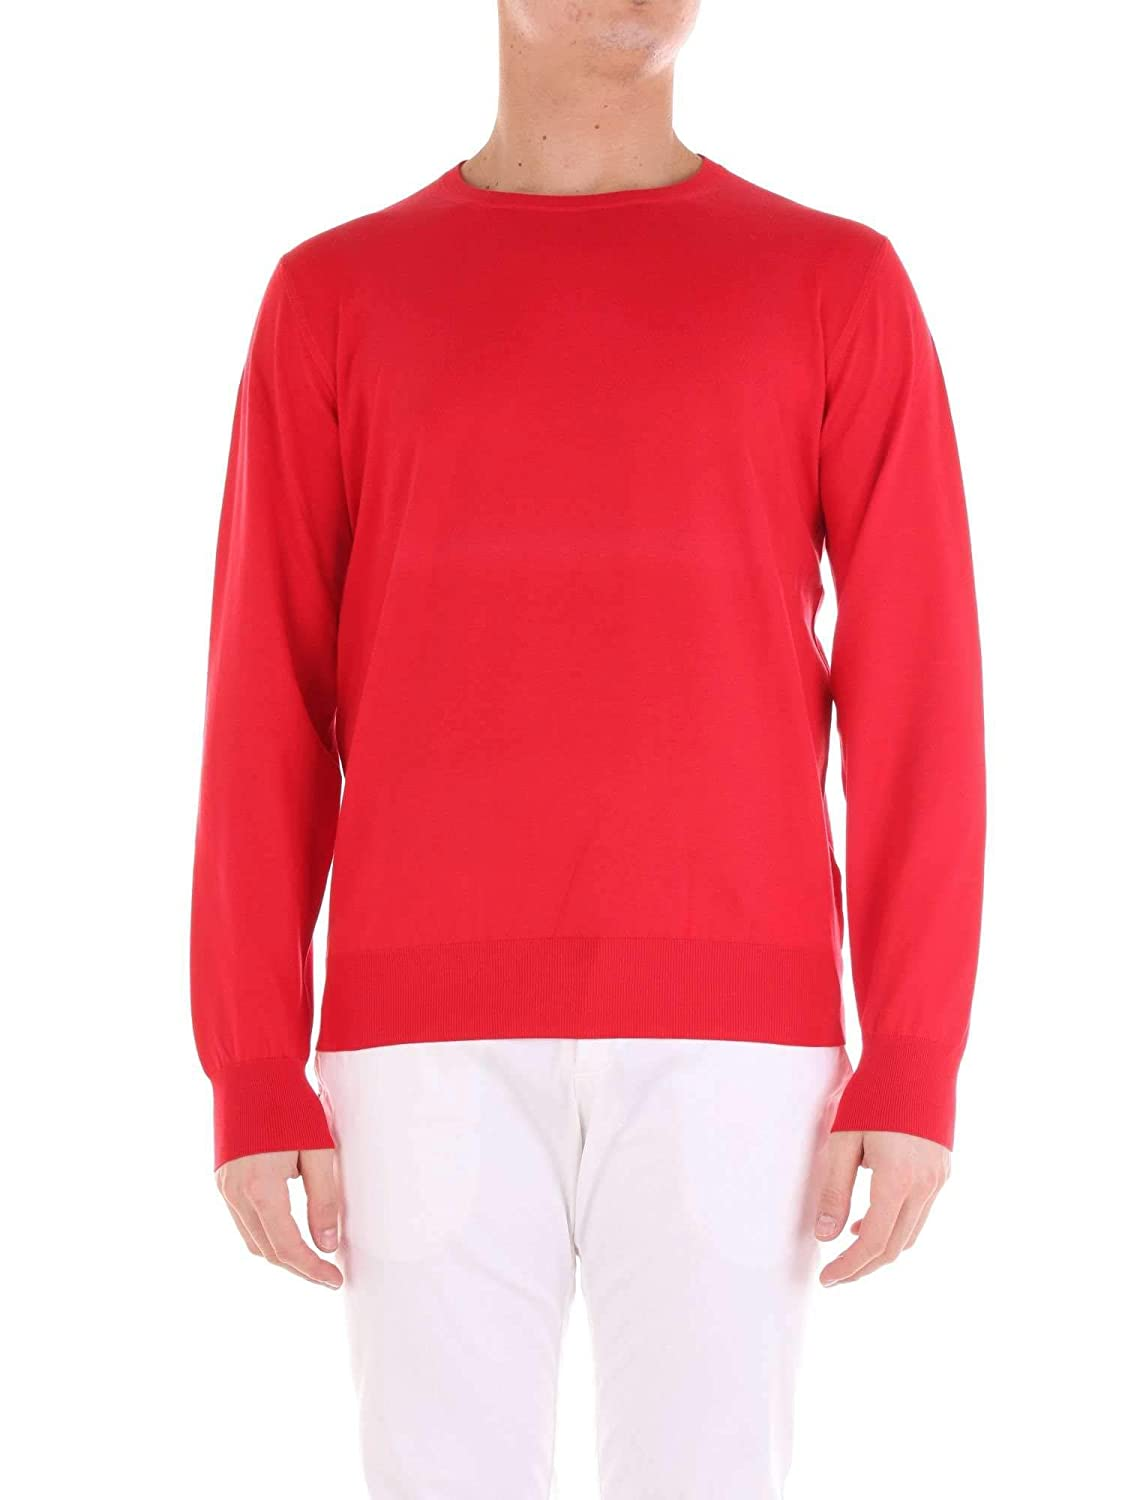 Cruciani Mens CU3235163 Red Wool Sweater